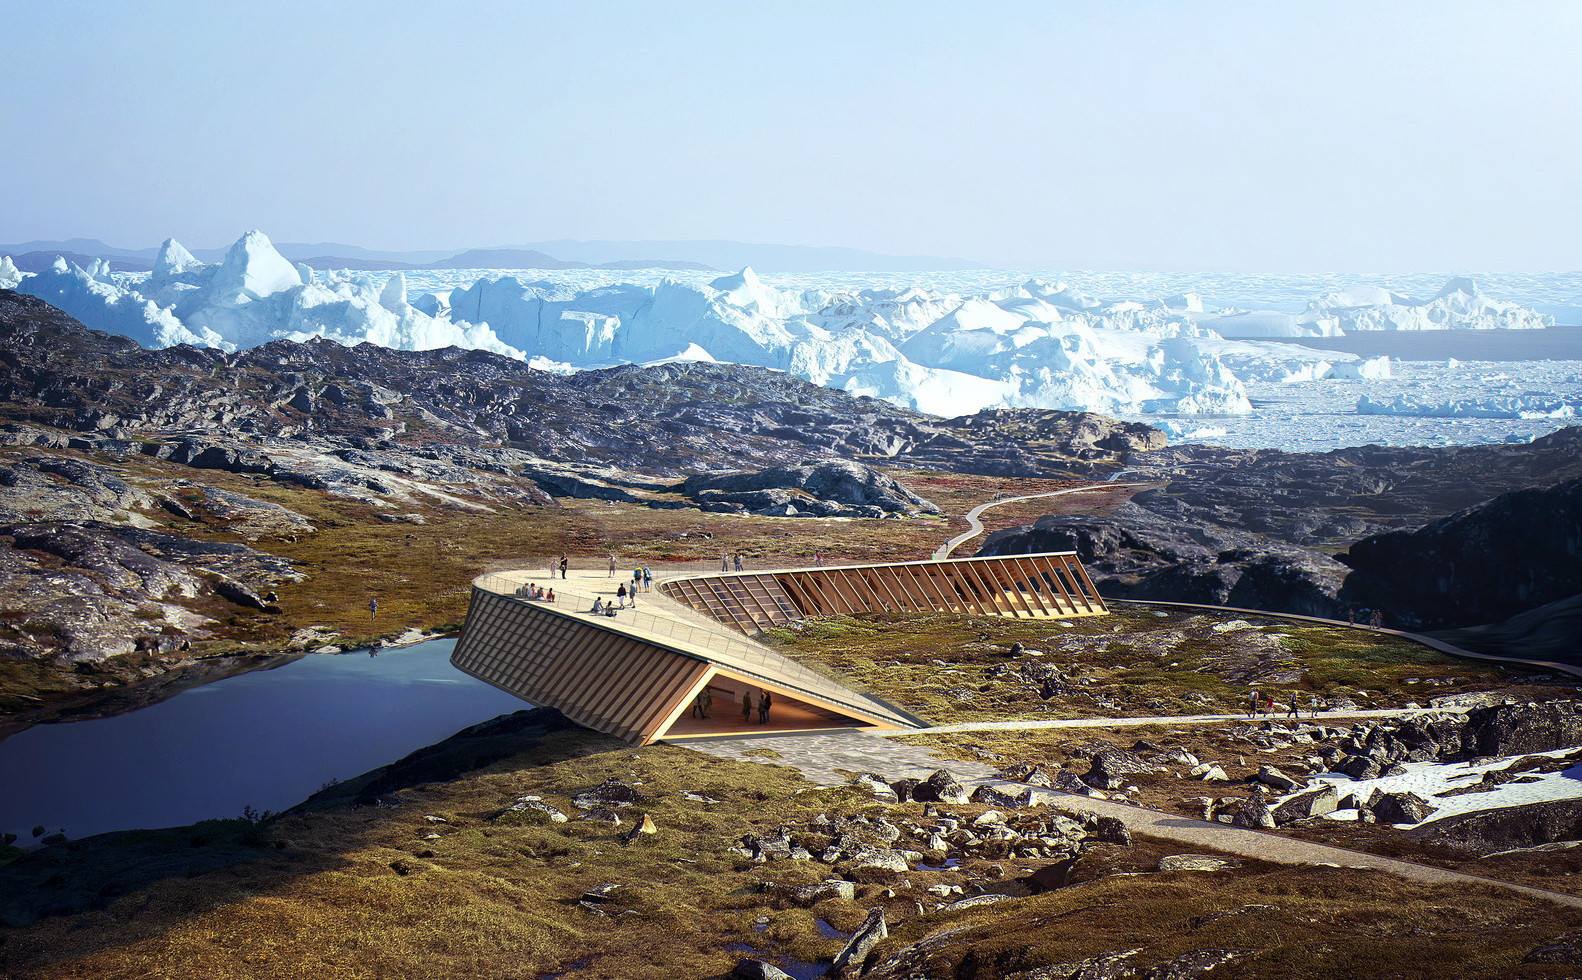 Viewing Pavilion at Greenland's Icefjord | Dorte Mandrup